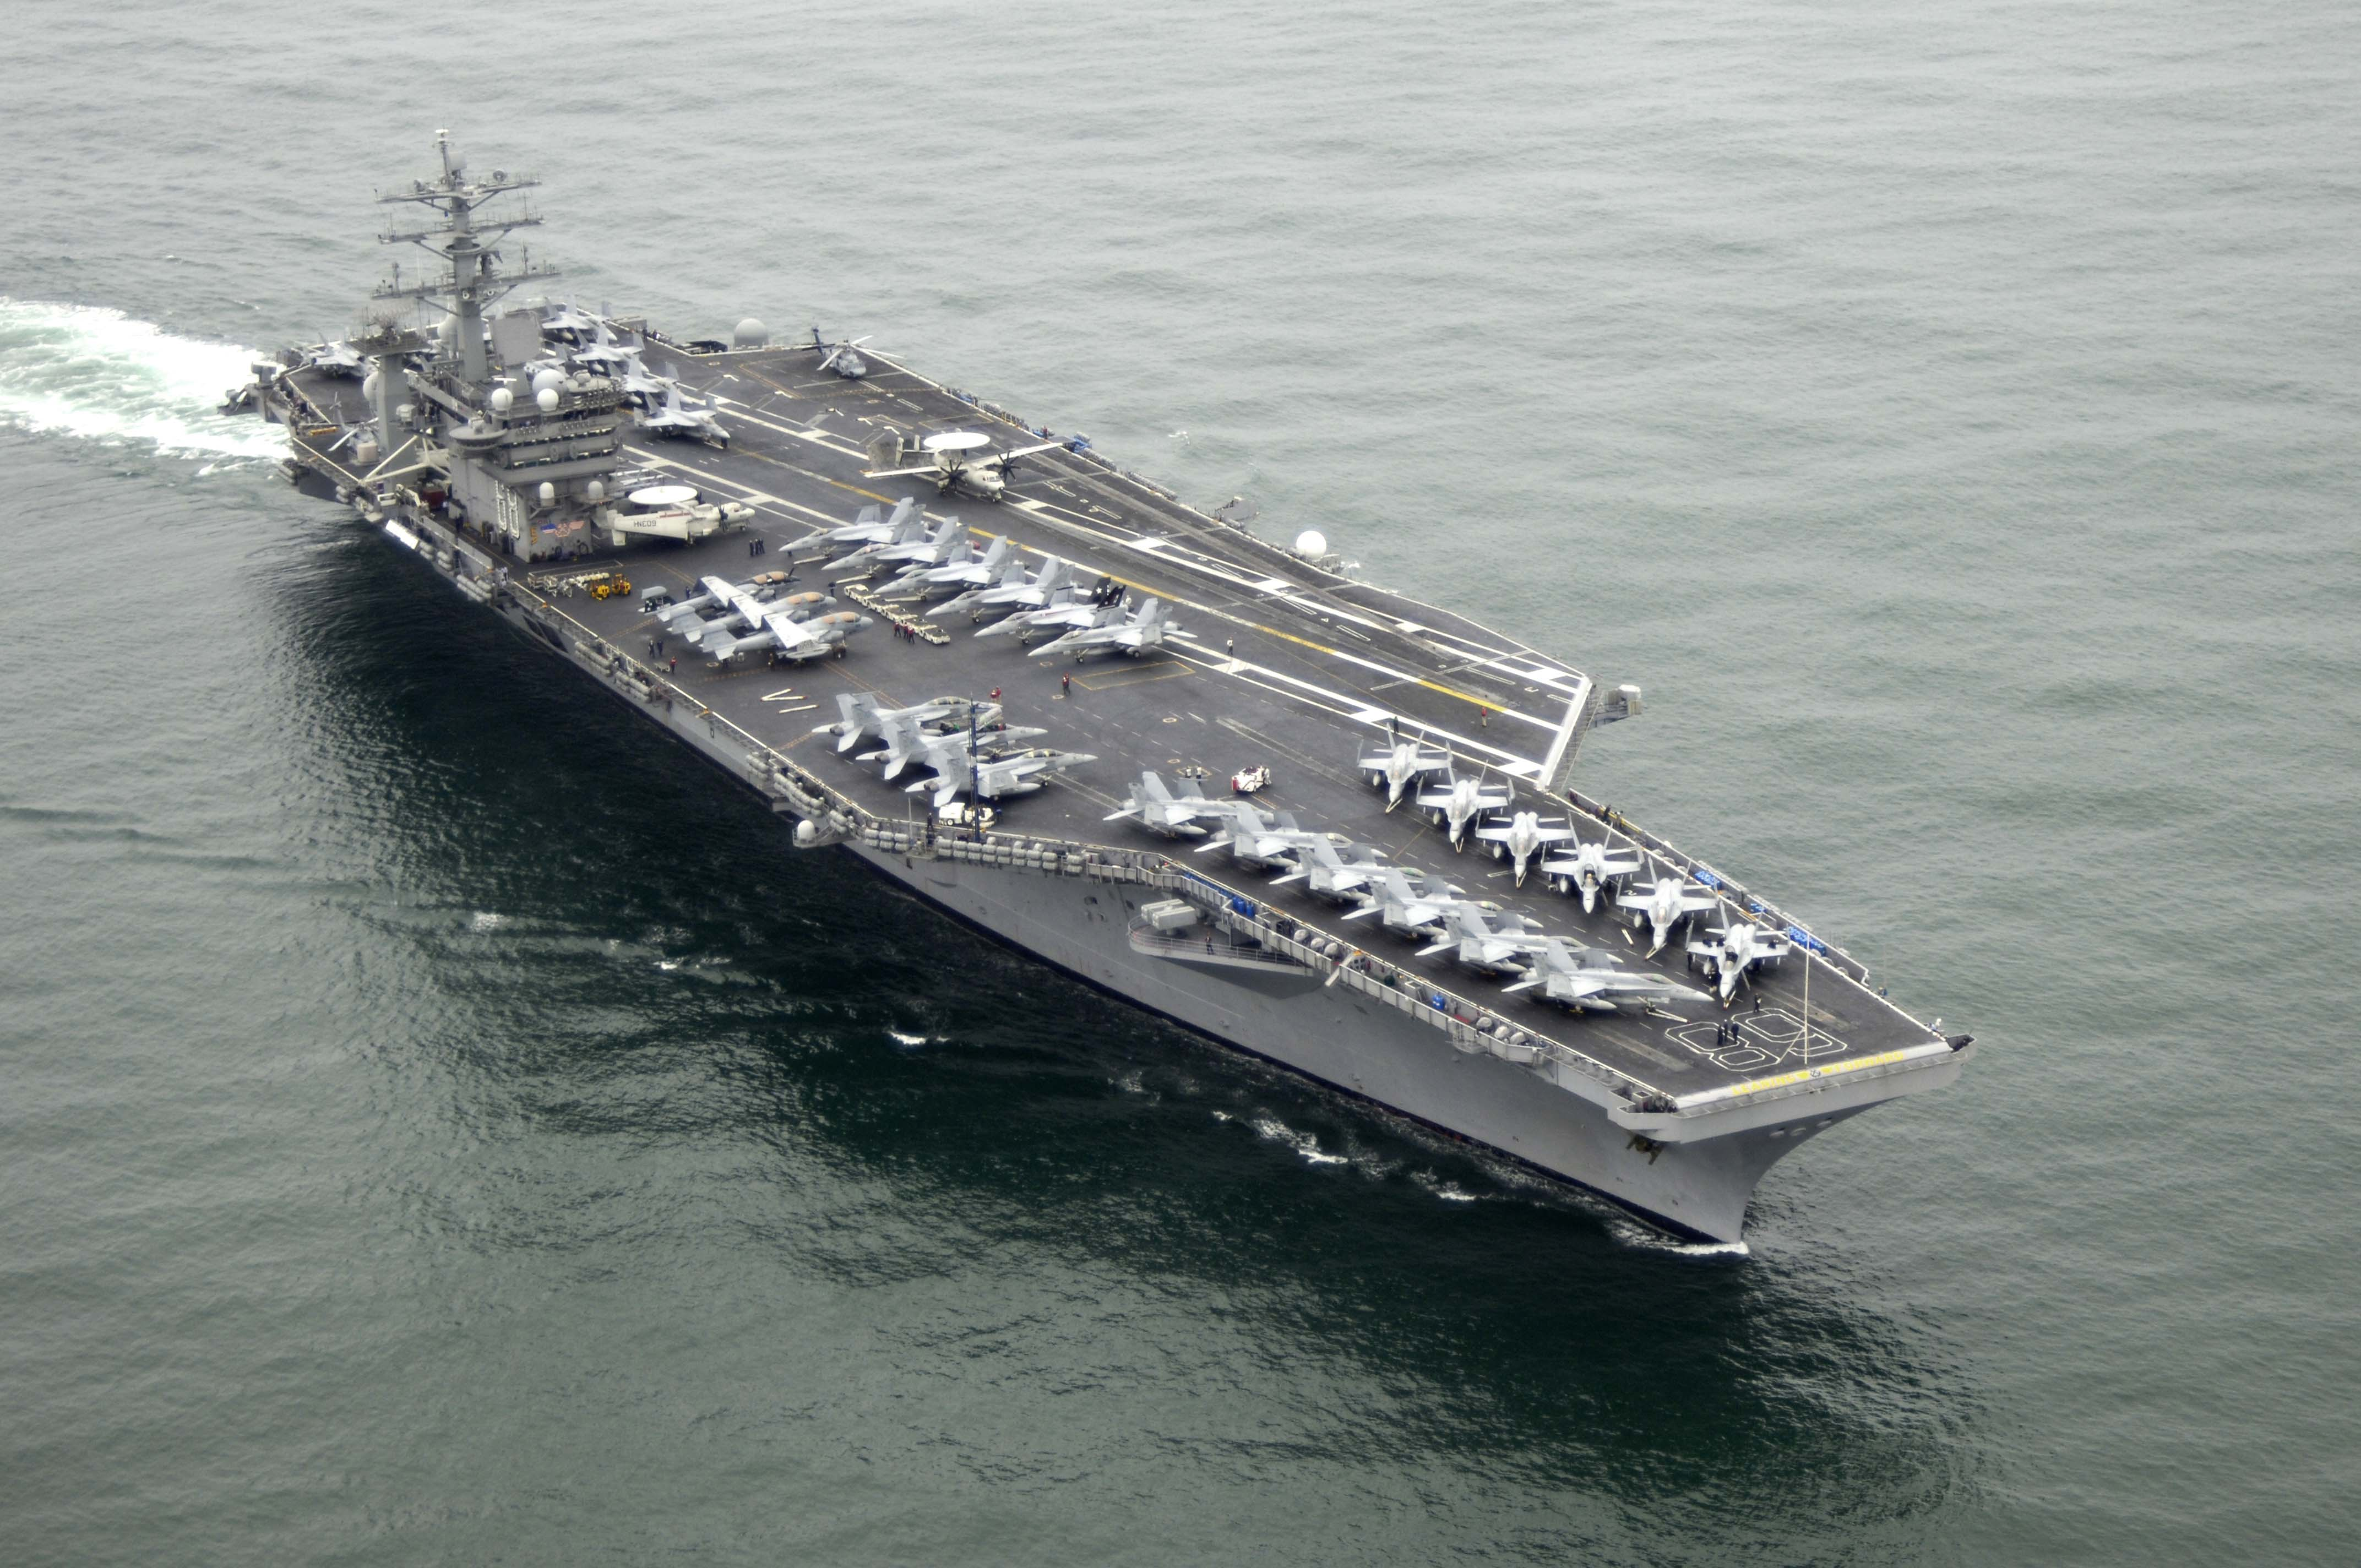 <p><strong>SF Fig. 2.4.</strong> A U.S. Navy Nimitz-class aircraft carrier floating at sea.</p>